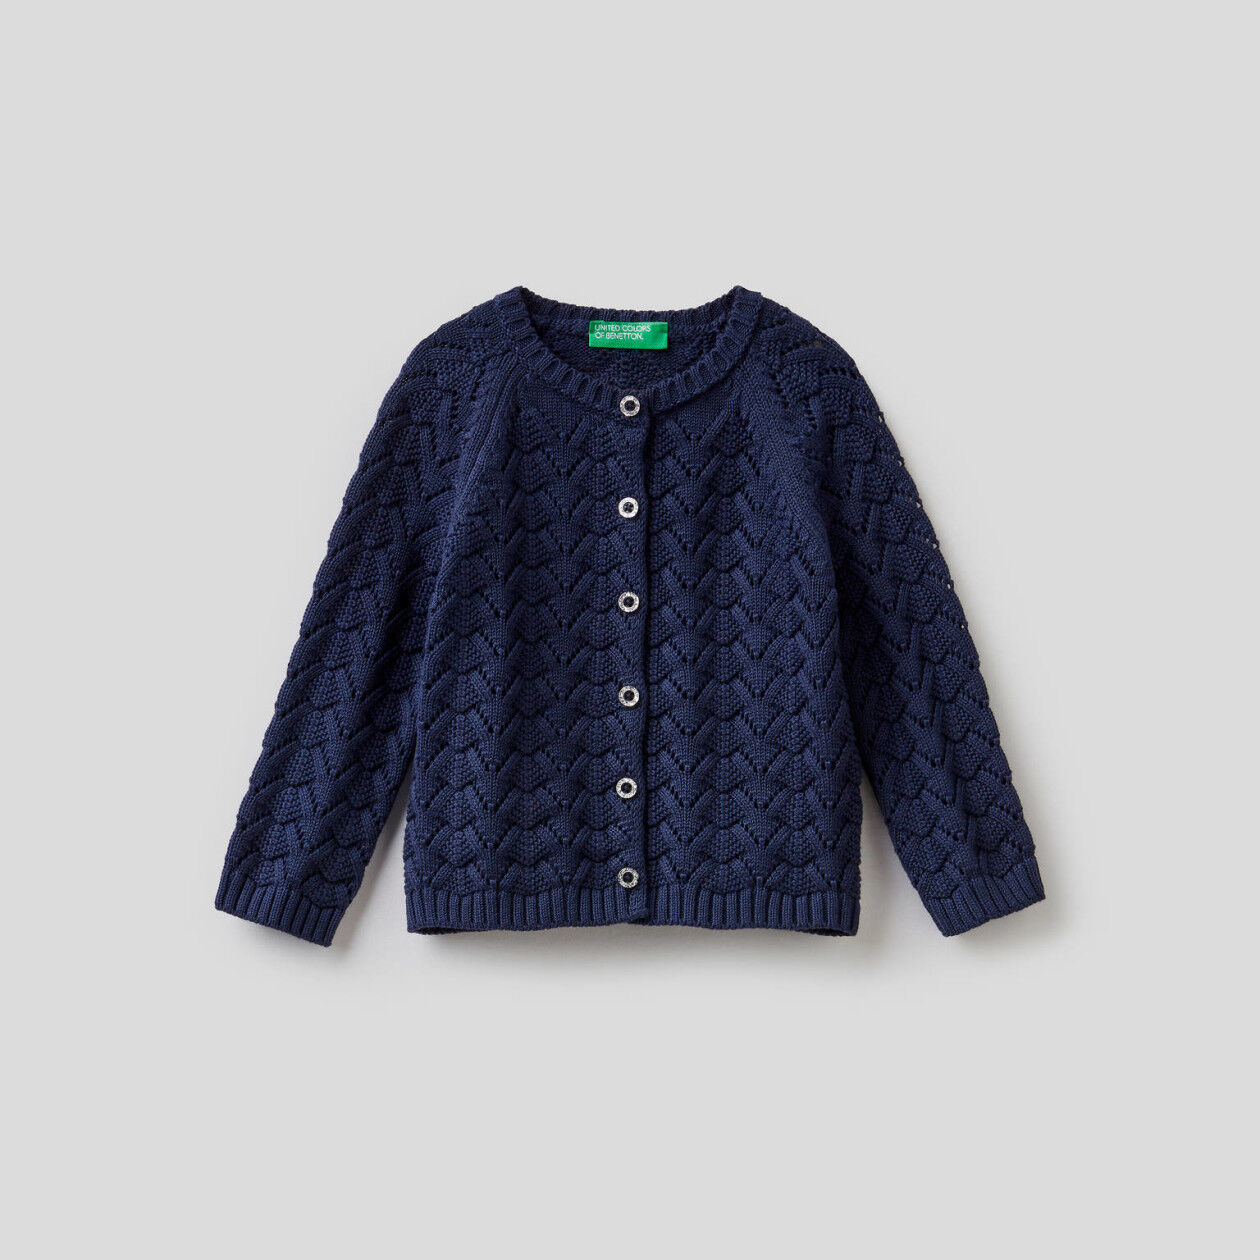 Knit cardigan in pure cotton